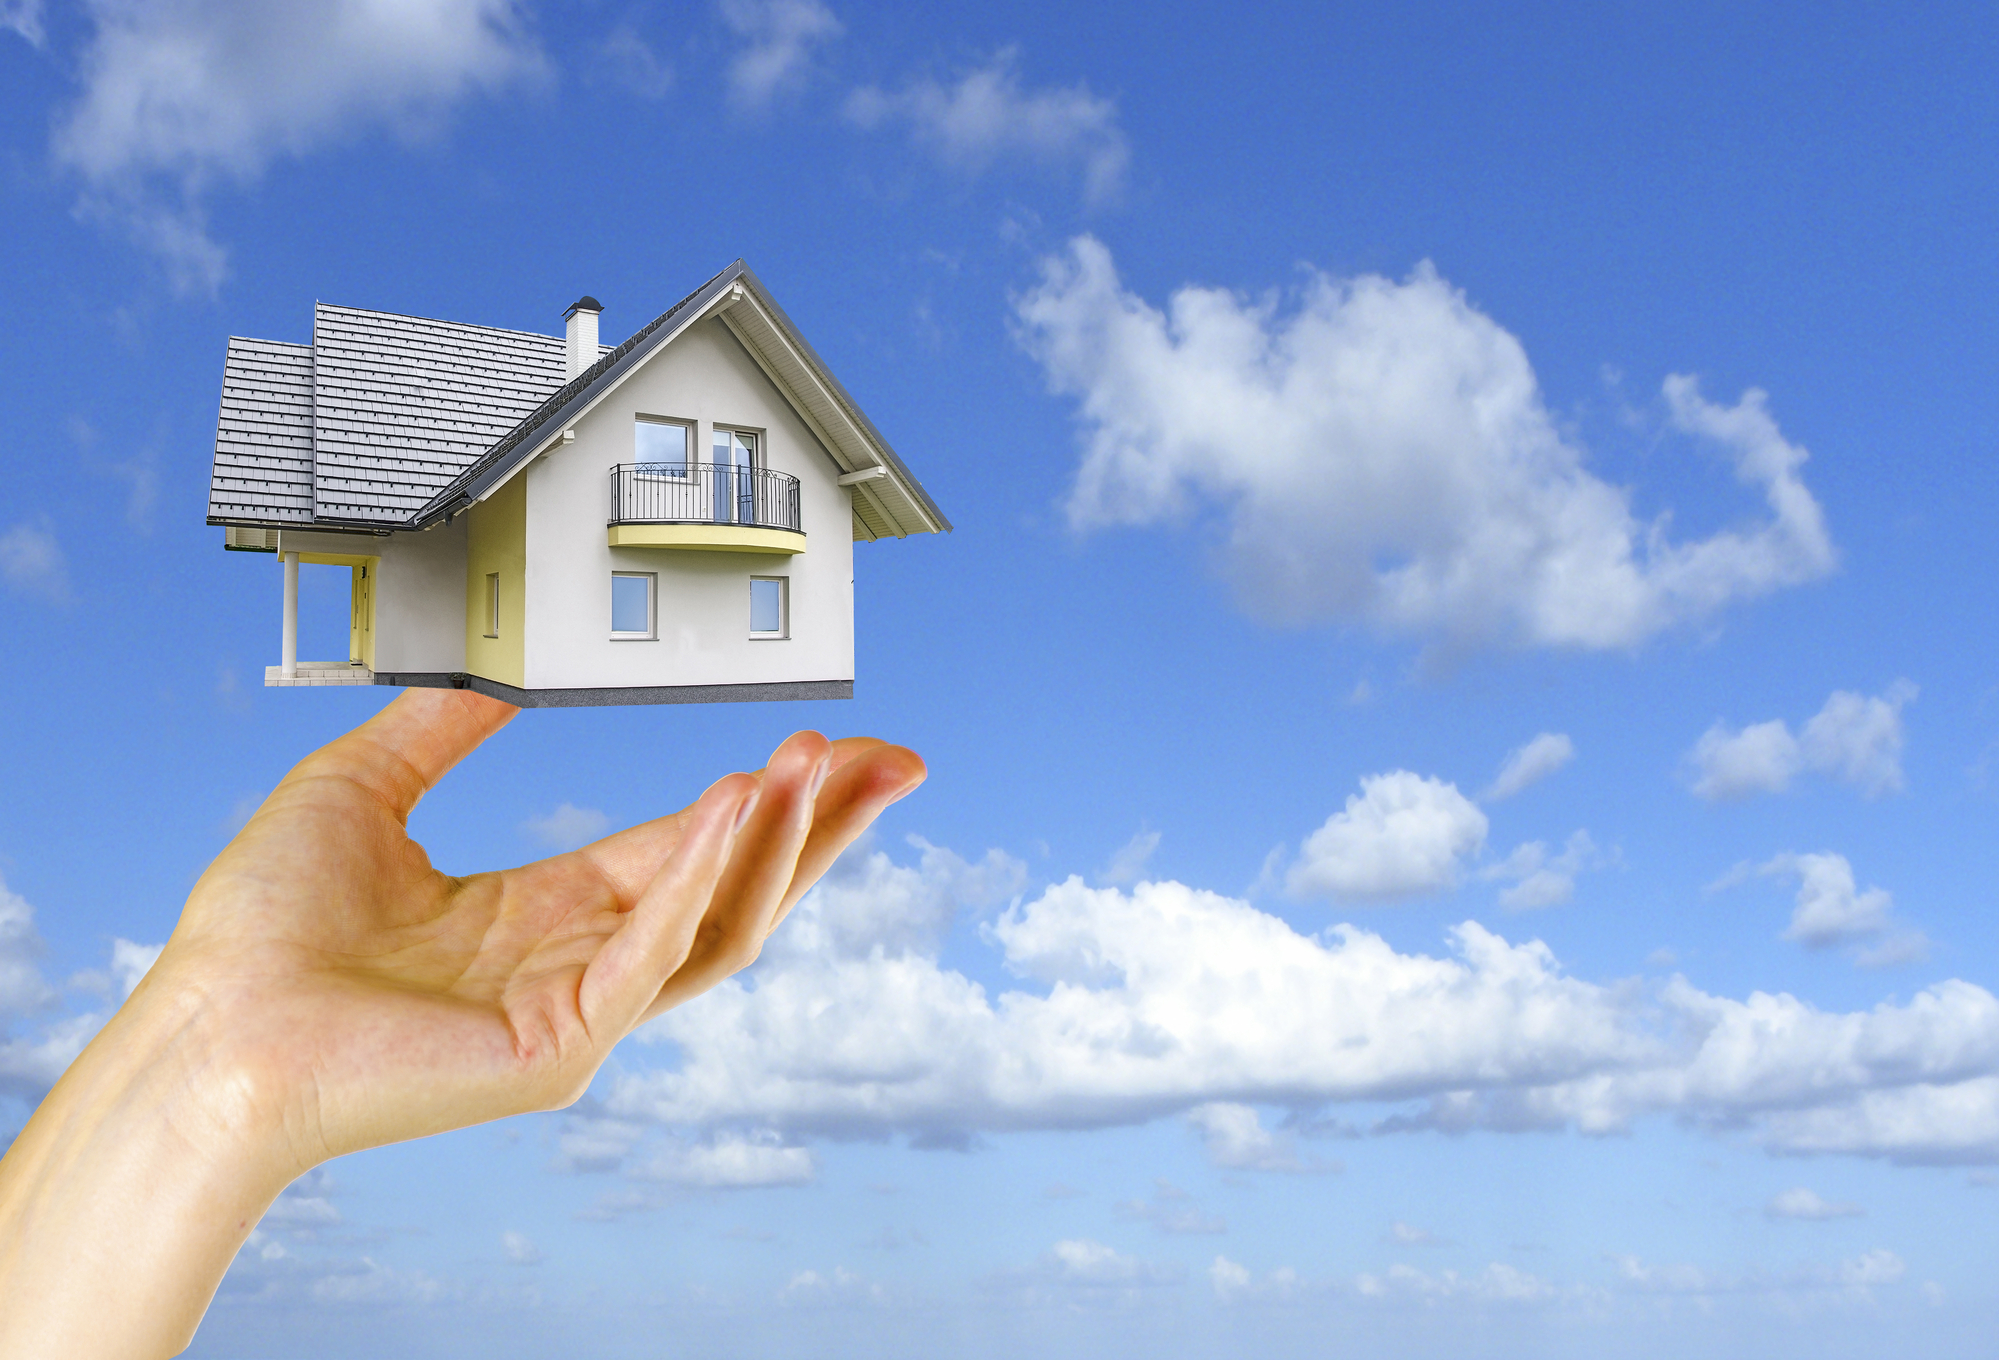 Outstretched hand with home hovering above with a blue sky in the background